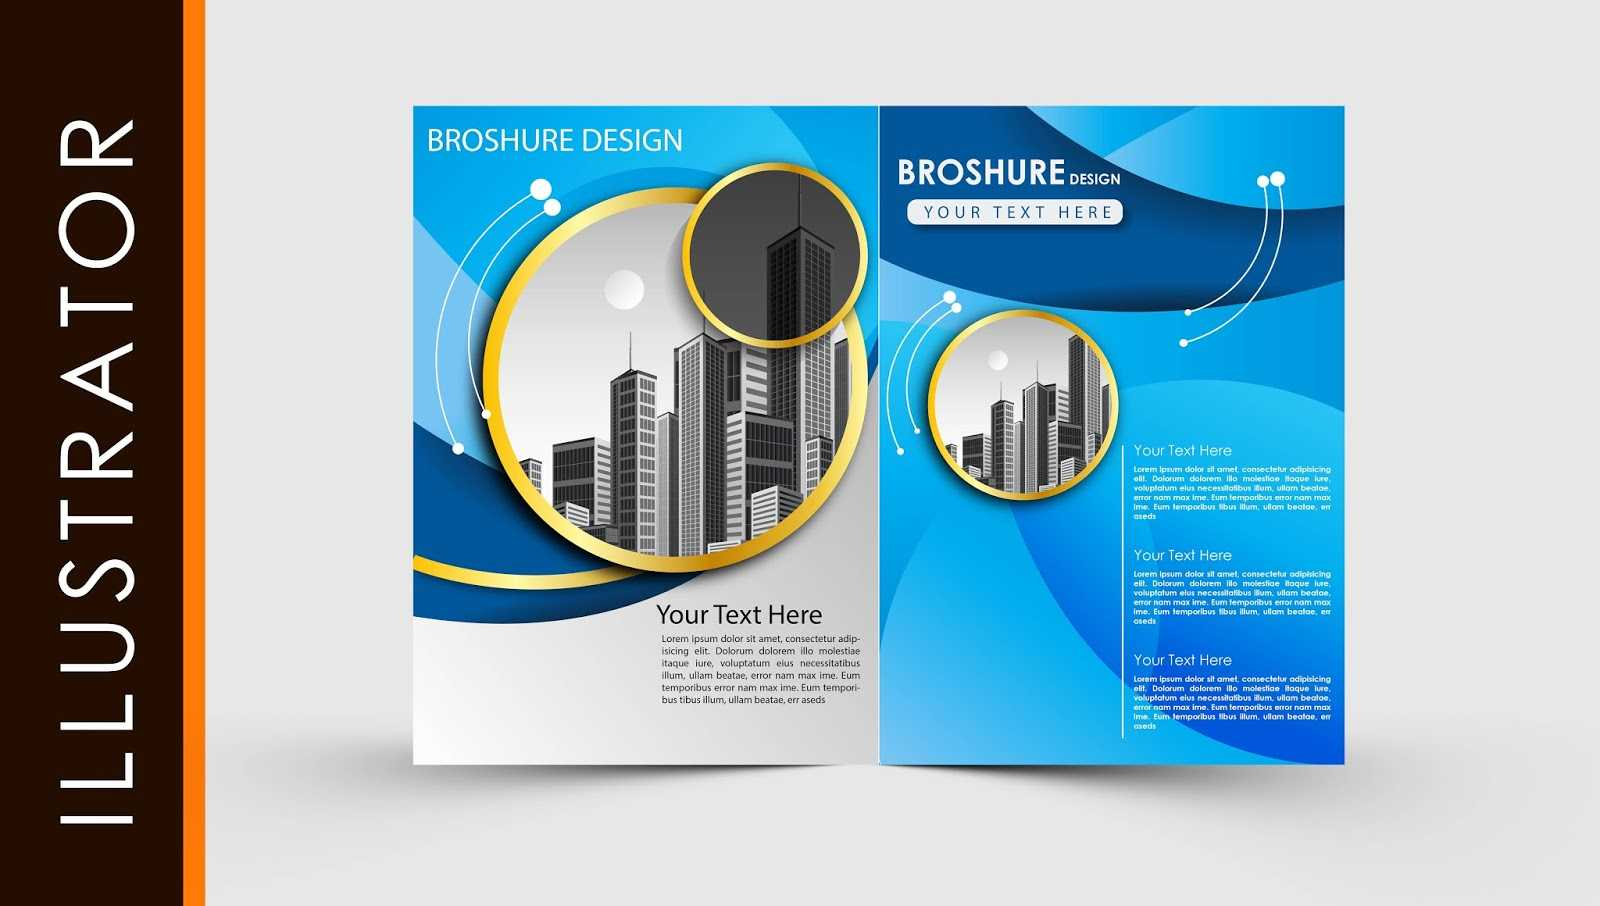 023 Brochure Templates Free Download For Photoshop Template Within Free Illustrator Brochure Templates Download